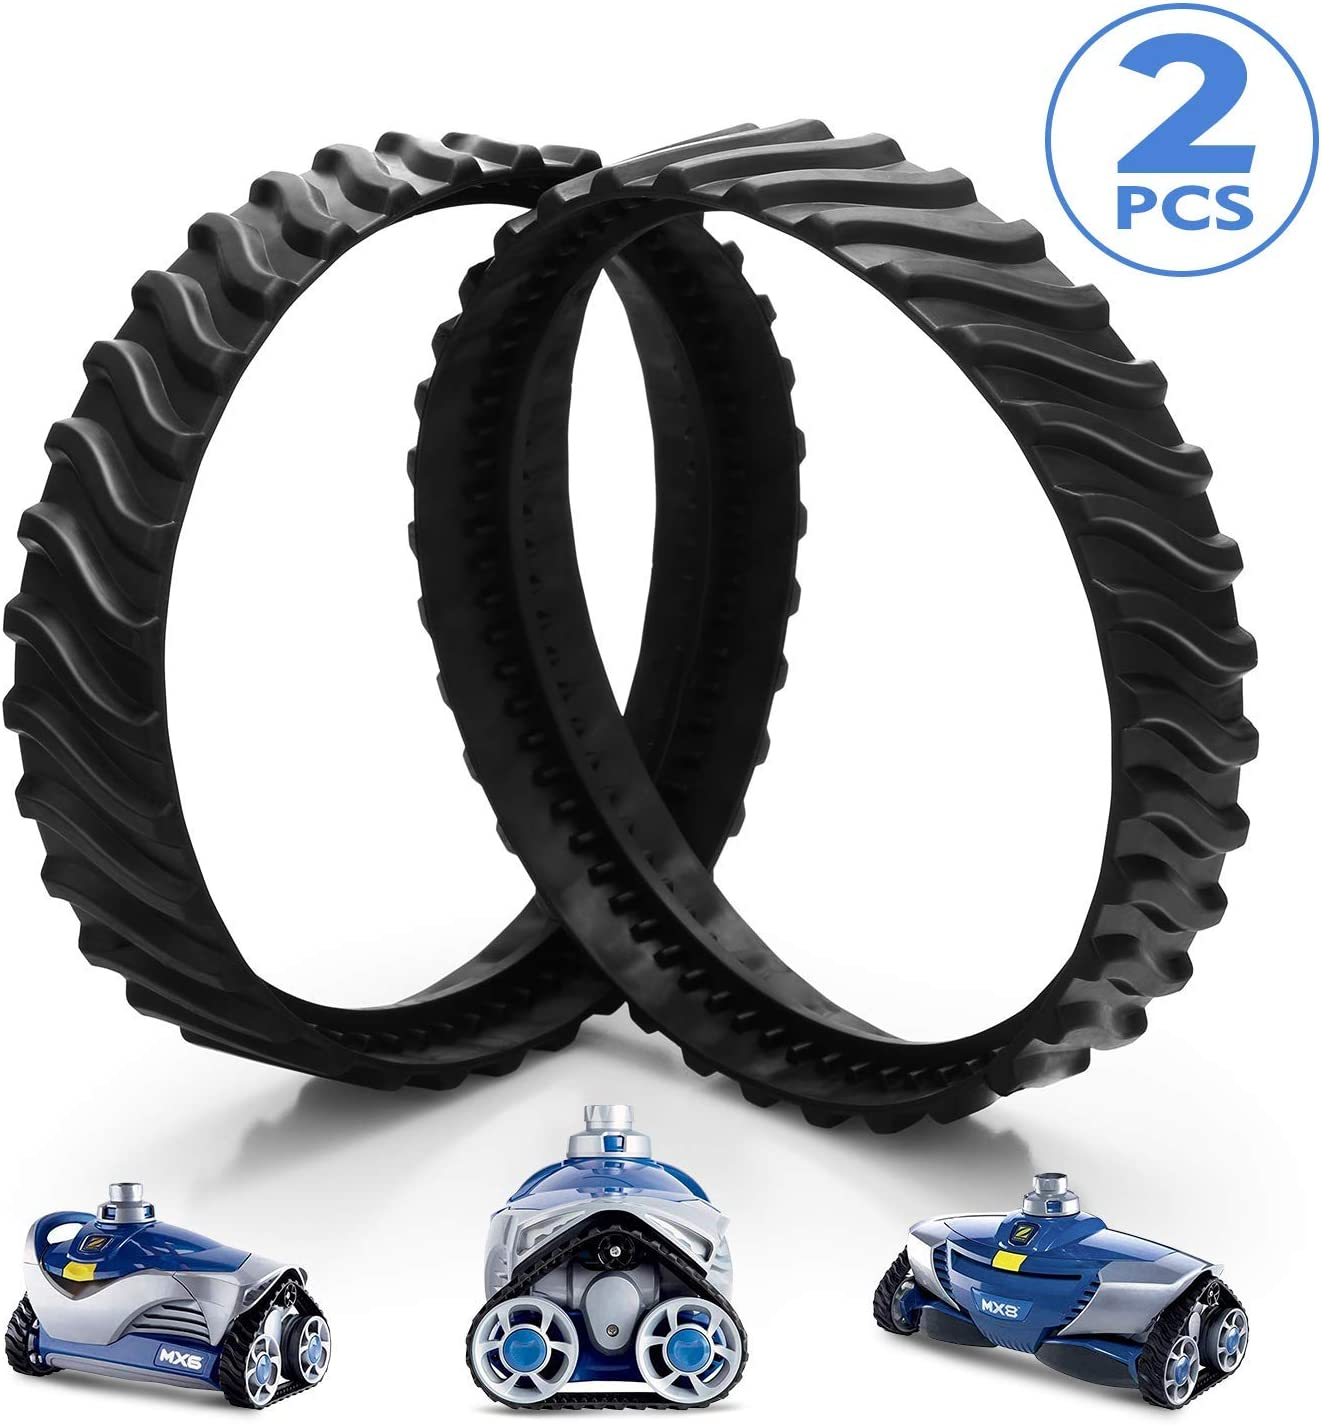 Ponwec Baracuda MX8 MX6 Swimming Pool Cleaner Zodiac Baracuda MX8 Replacement Wheel Track Tire Premium Heavy Duty Rubber Maded Exact Fit for R0526100, 2 Pack